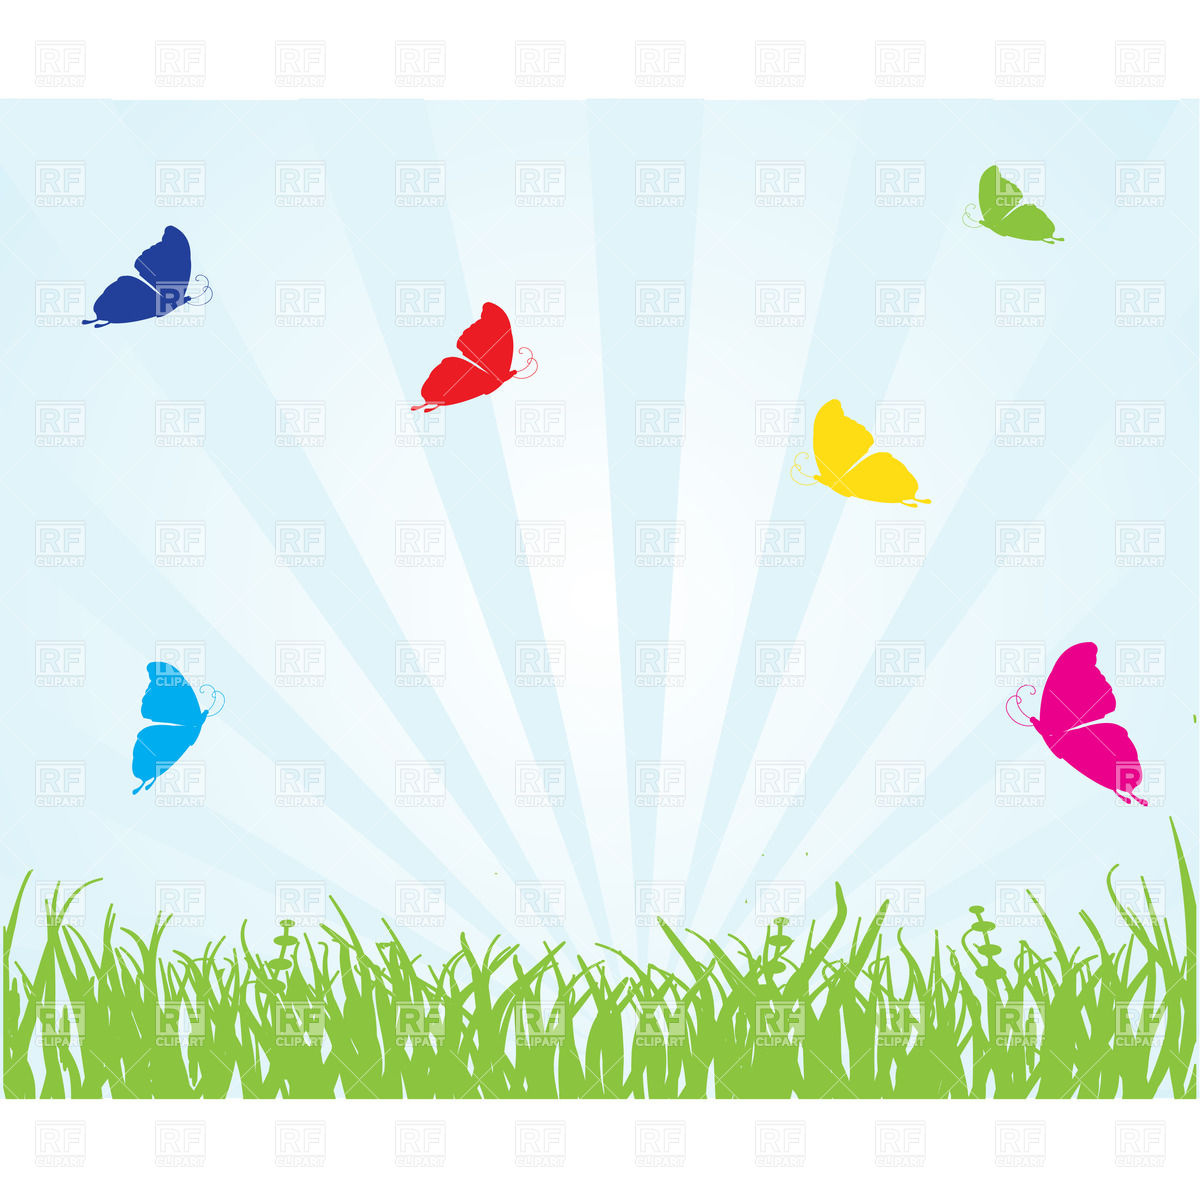 Natural backgrounds with grass, rays and butterflies Stock Vector Image.